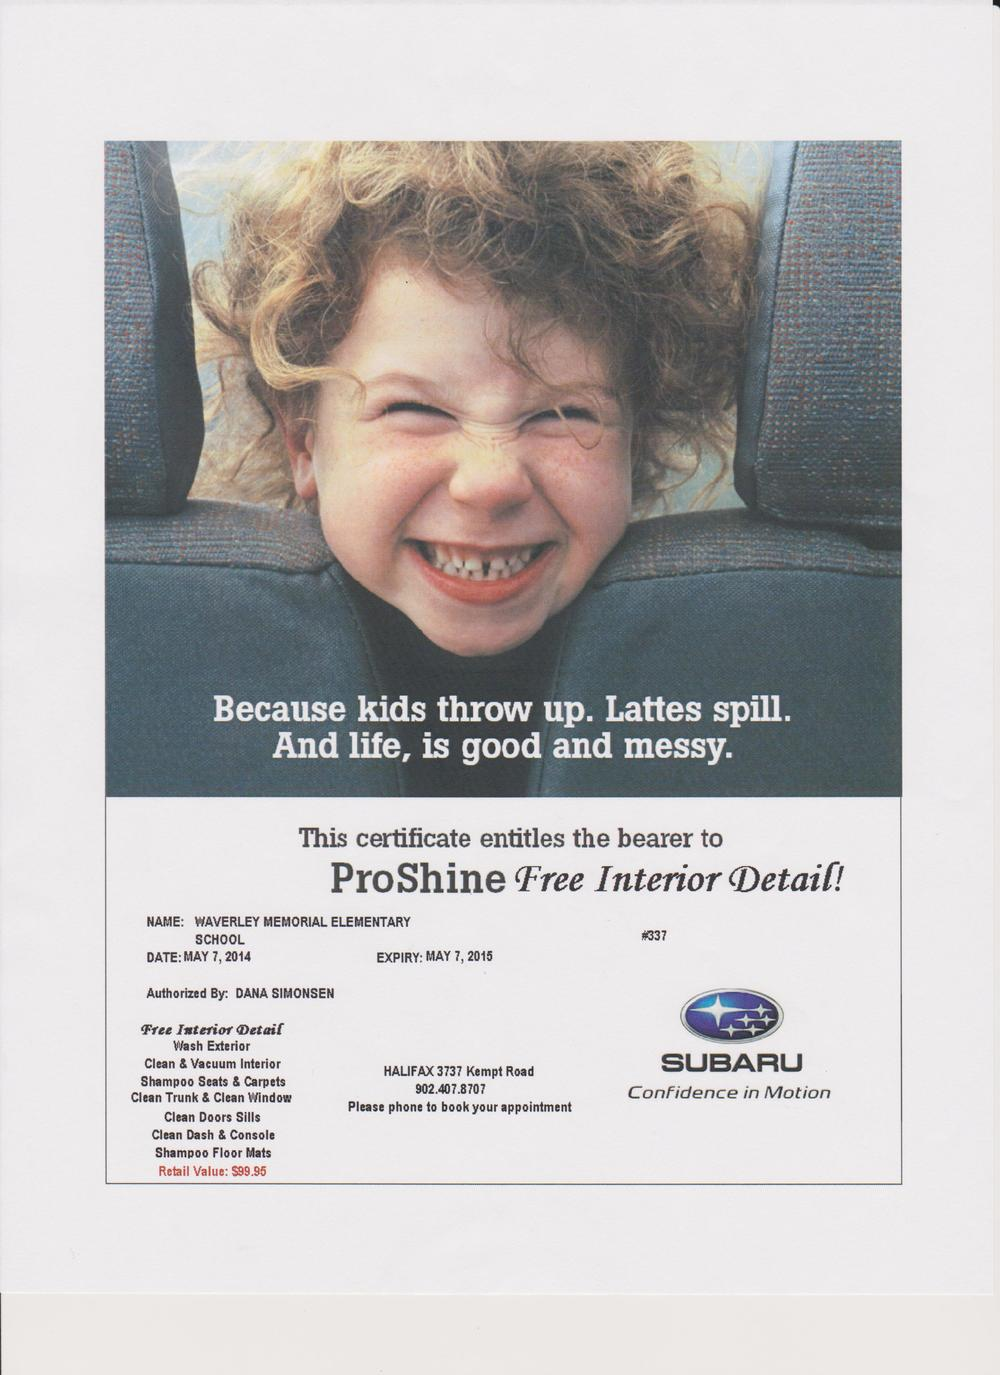 Halifax Subaru  has donated a $100 car detailing package. You can tidy up just in time for summer!